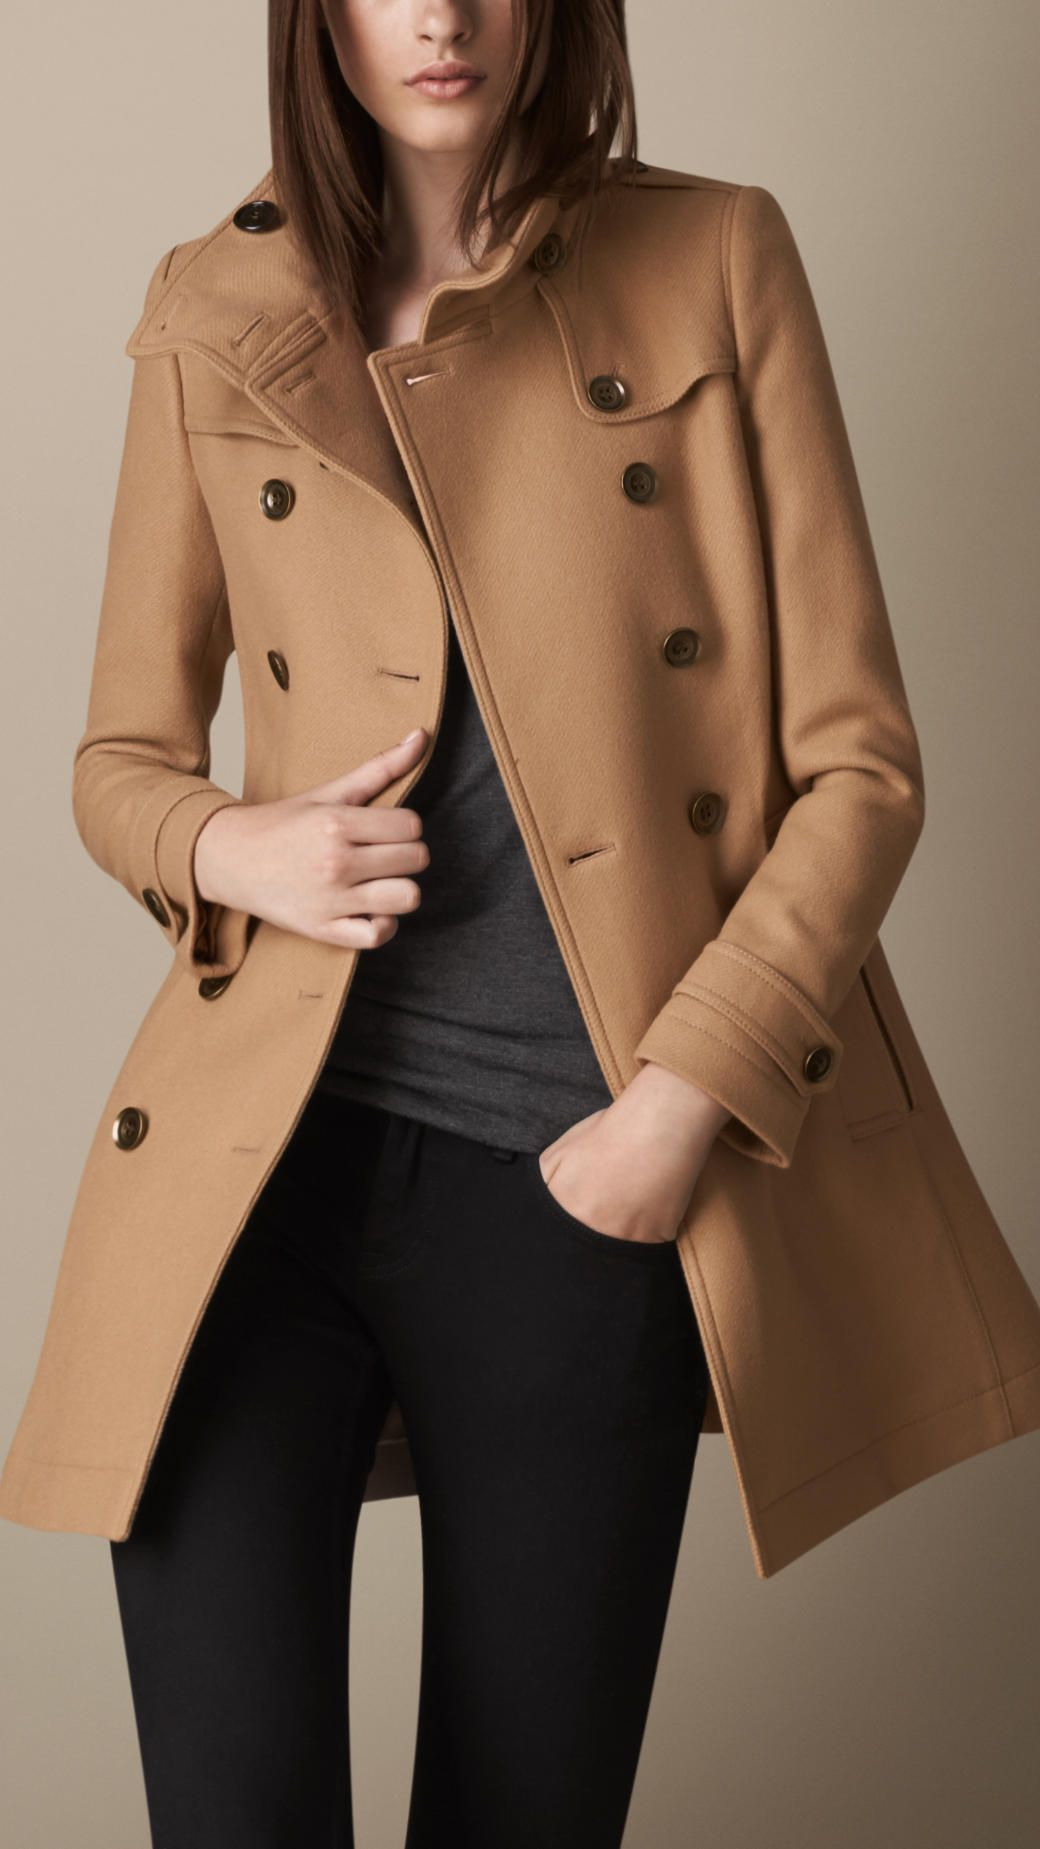 Double Wool Twill Trench Coat Burberry Wool Trench Coat Coat Trench Coat